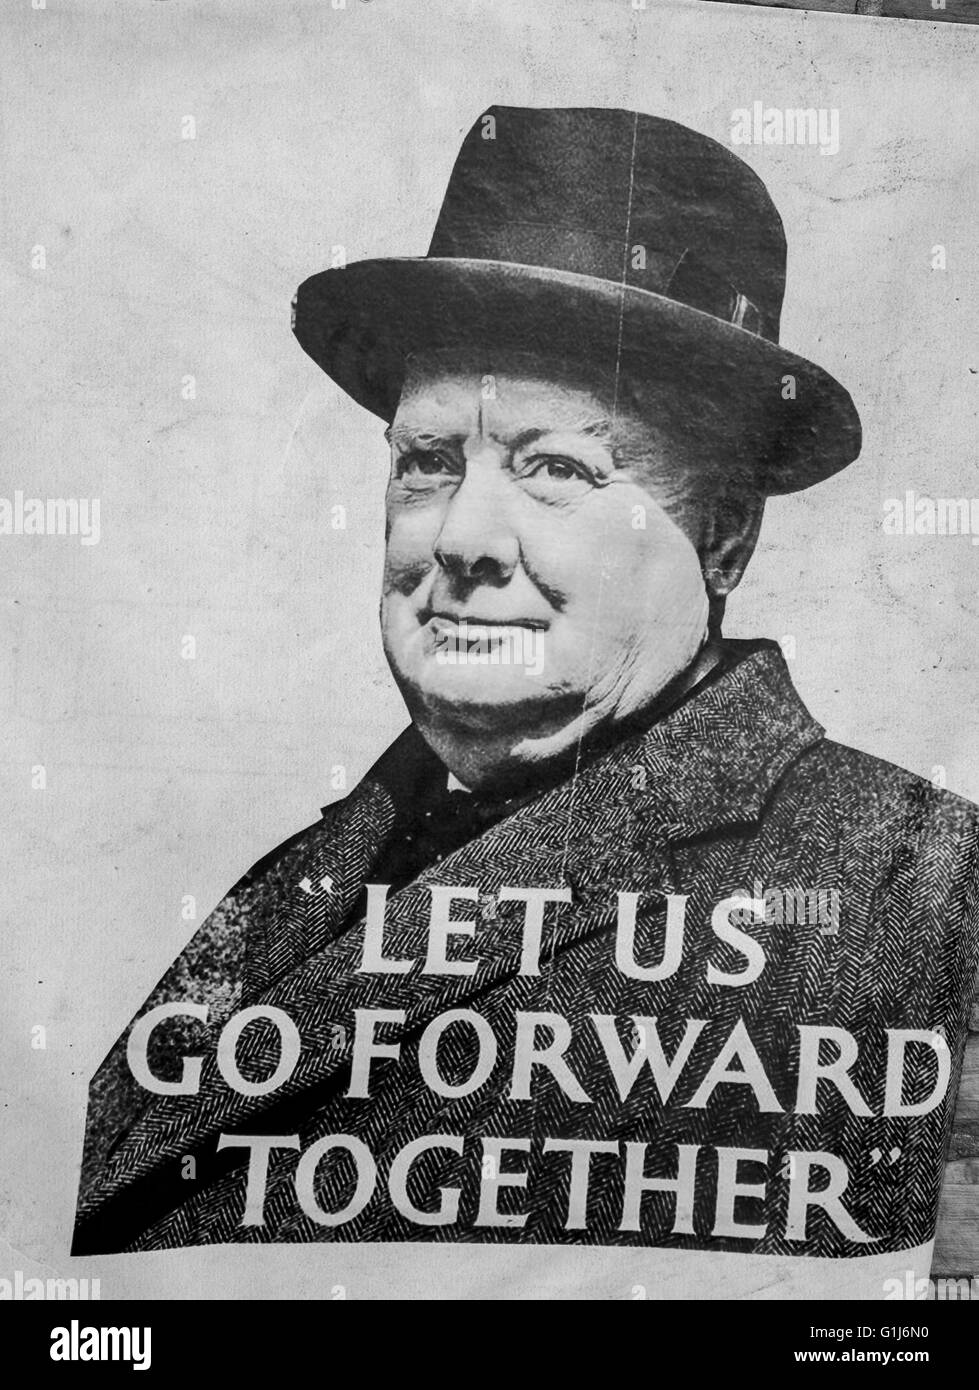 1940s WW2, WWII. World War two. Wartime poster in Haworth, North Yorkshire, UK. Advertising 1940s Churchill quotation - Stock Image